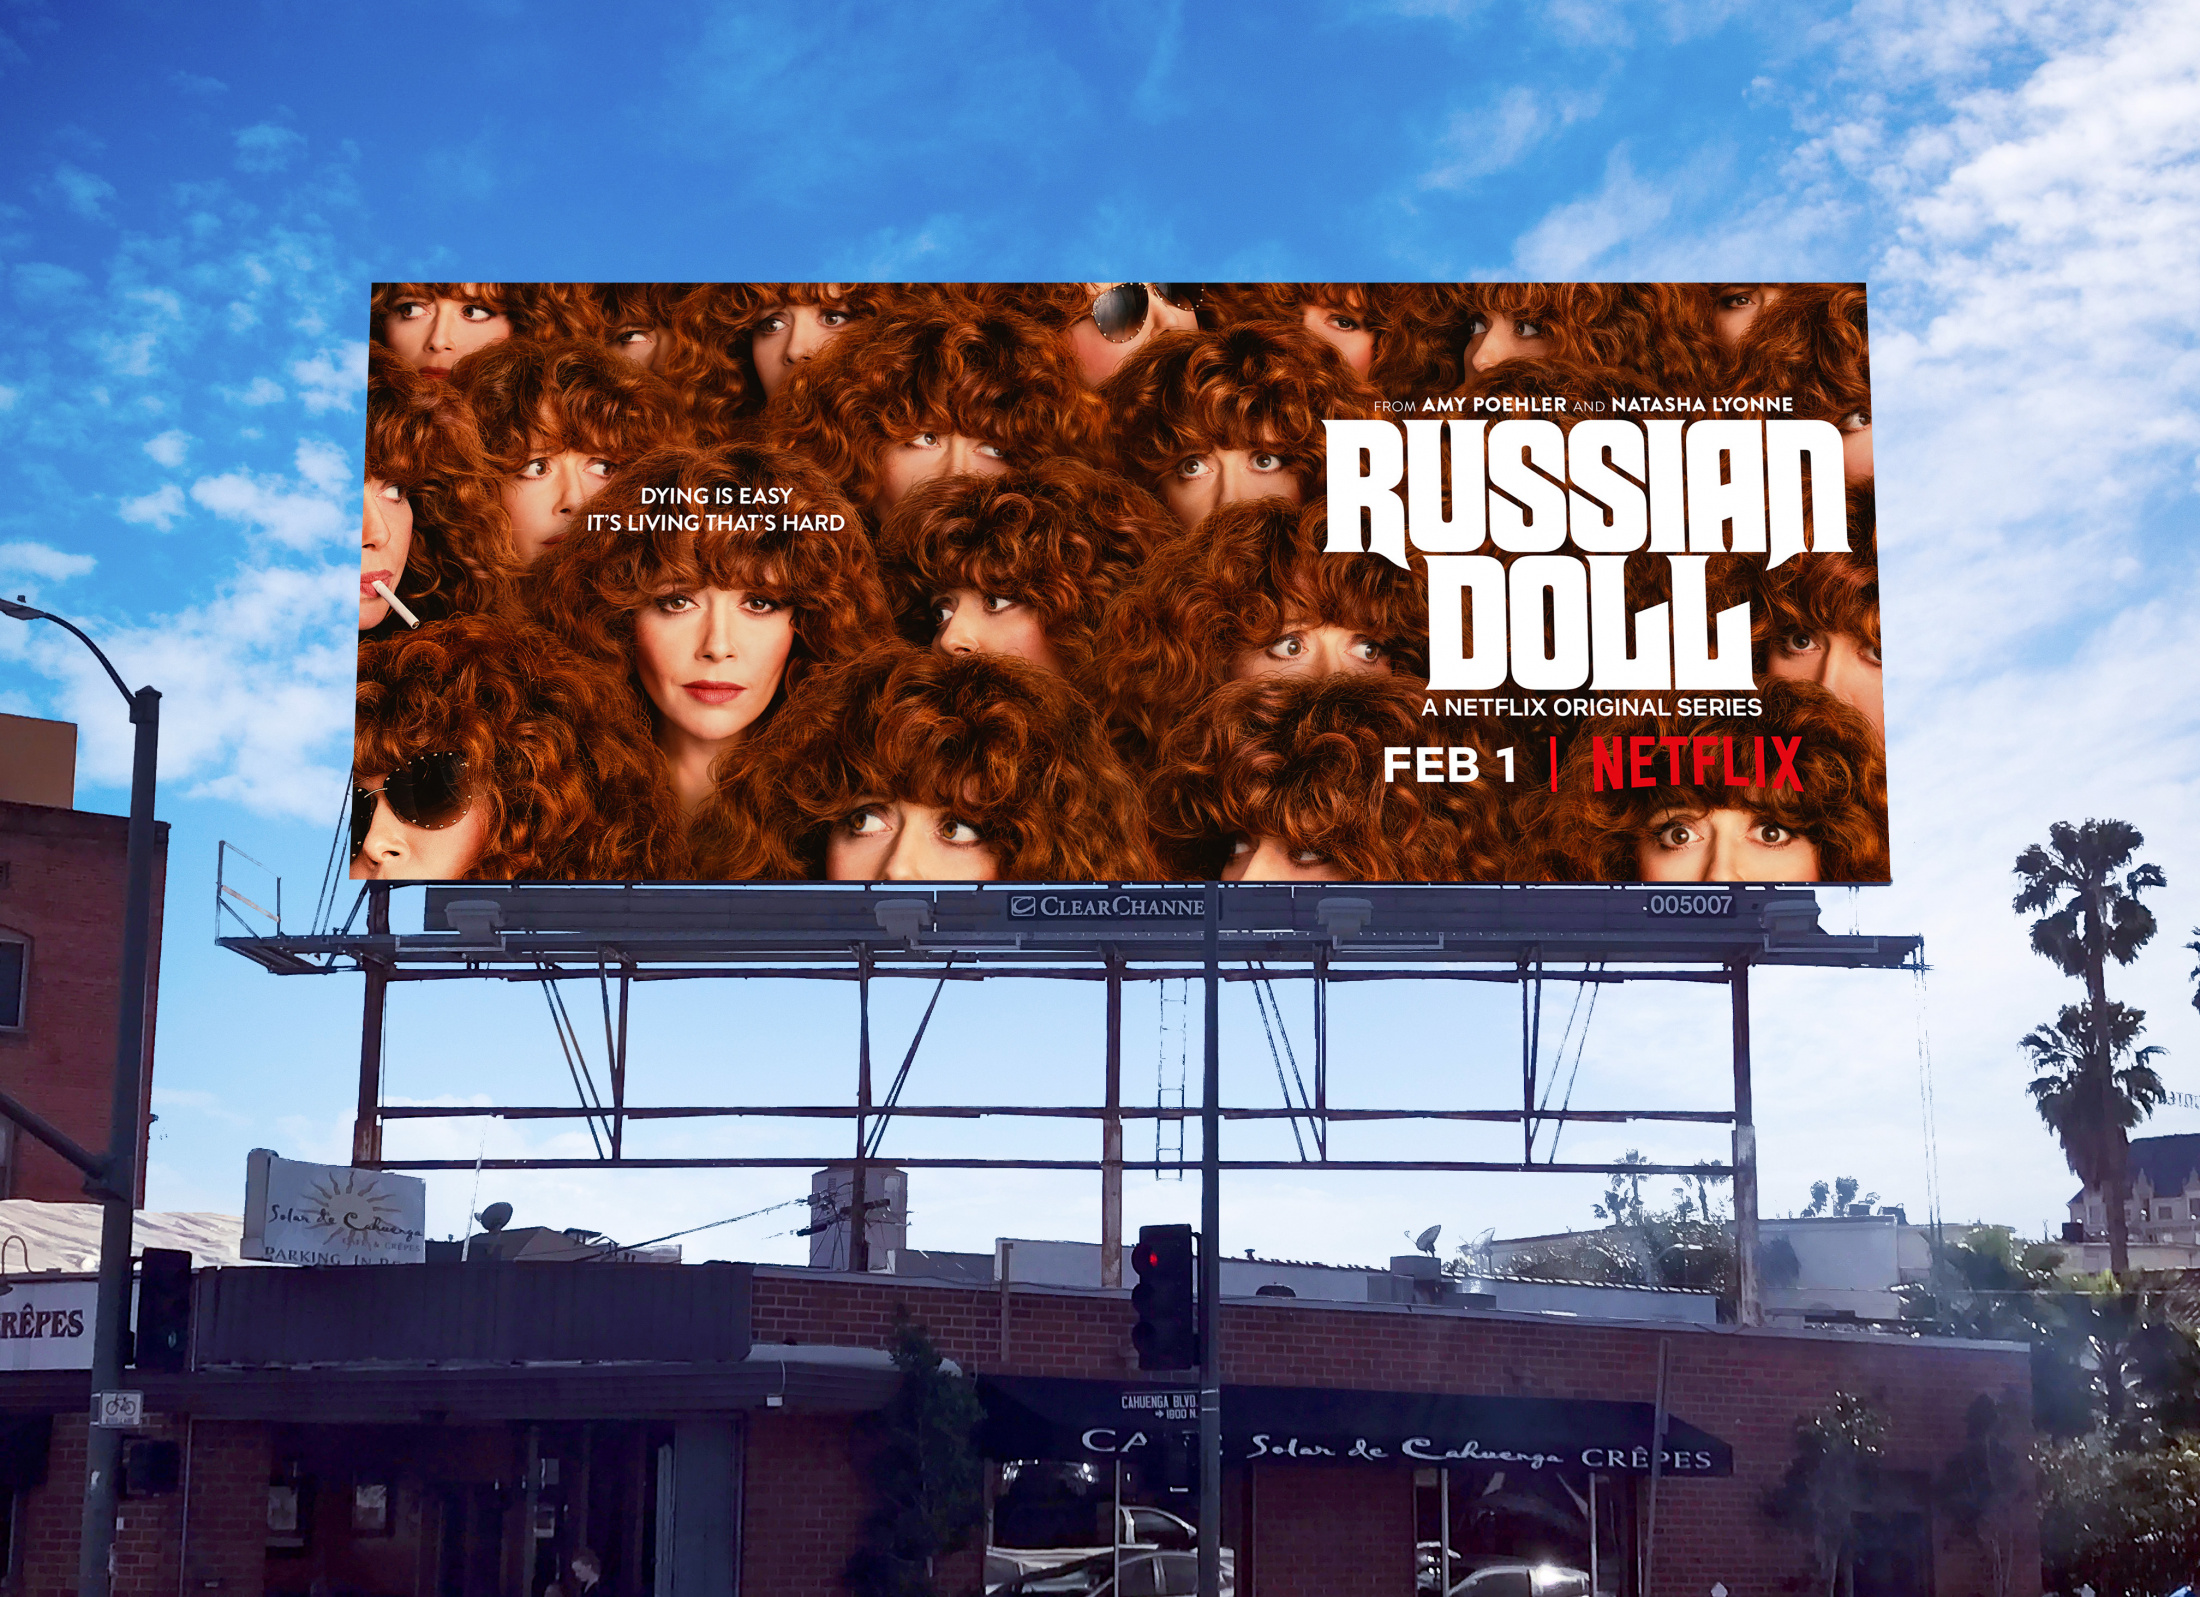 Image Media for Russian Doll OOH Key Art